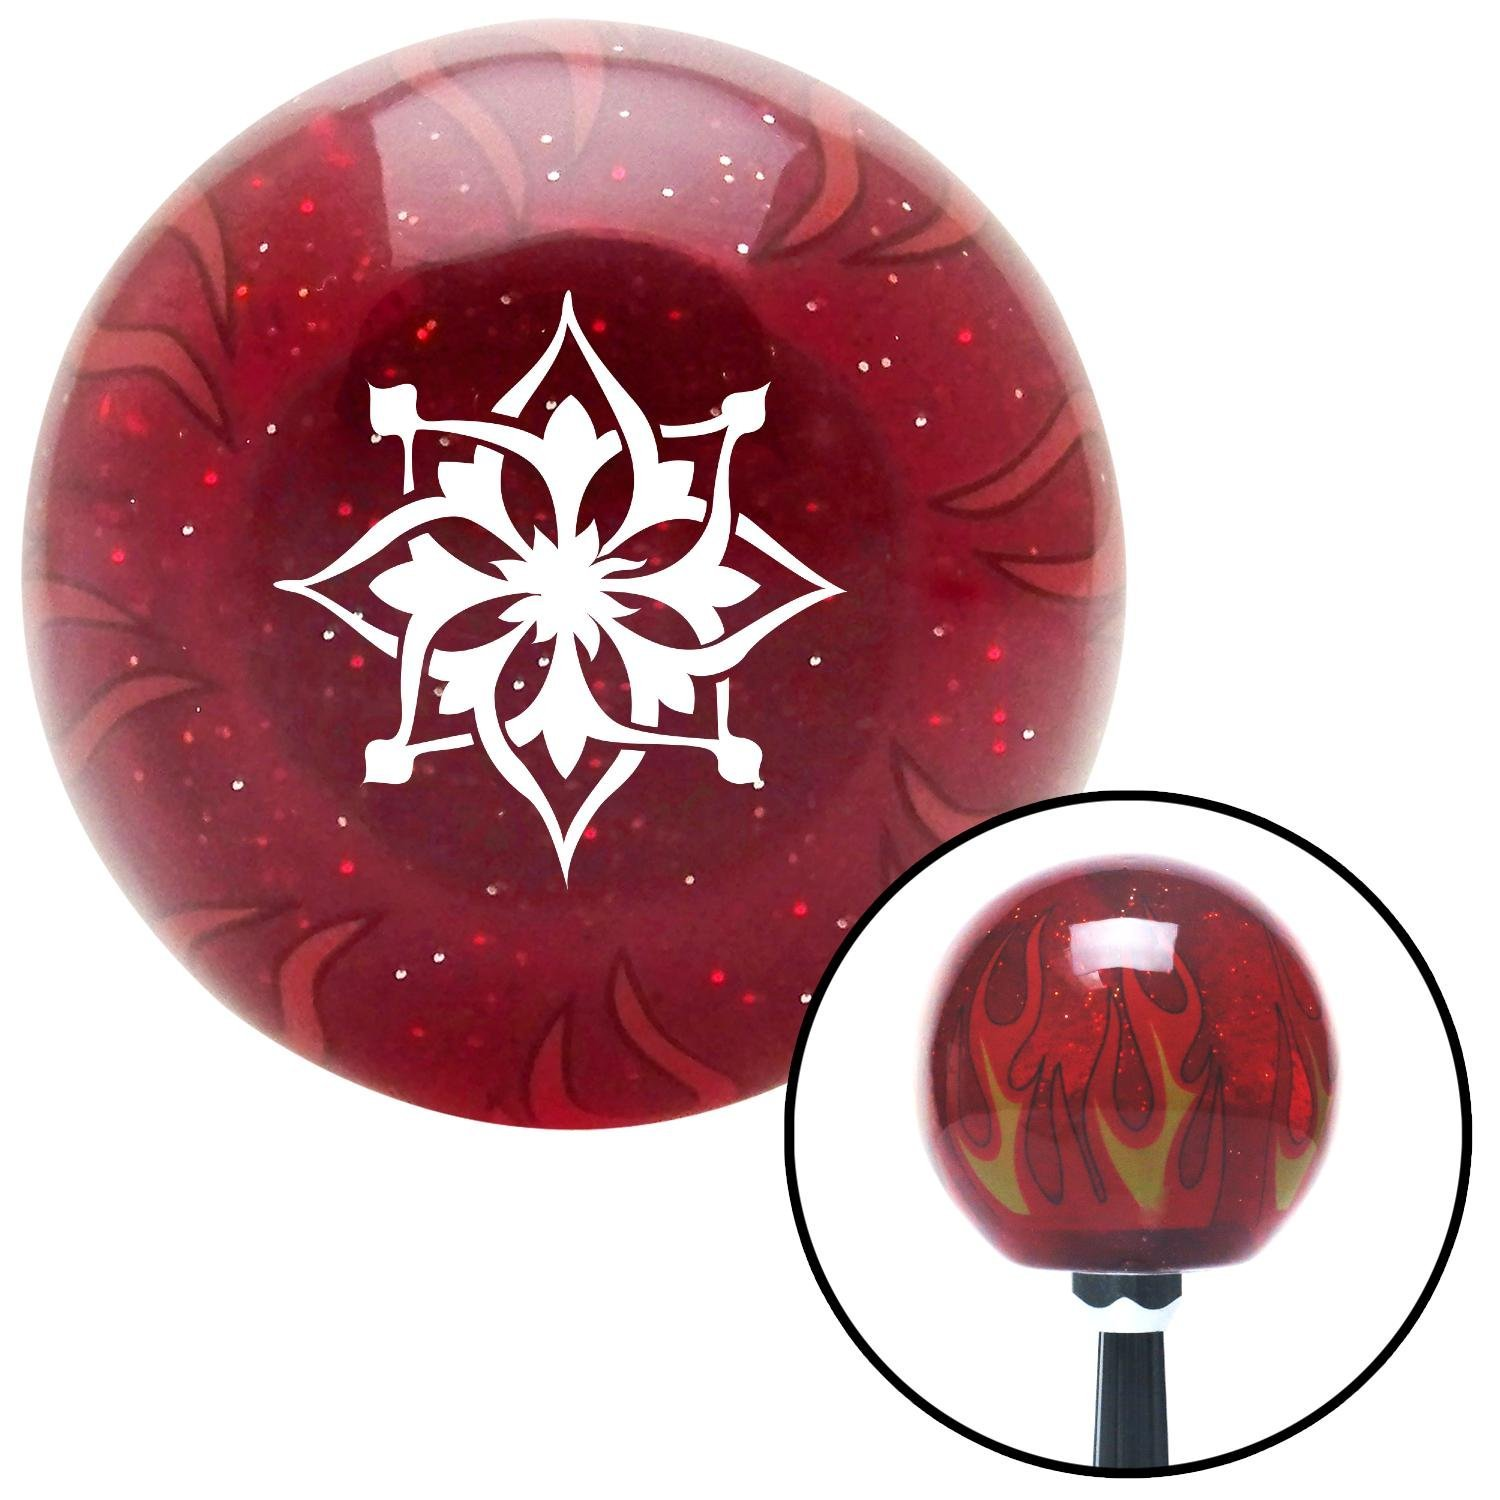 American Shifter 238125 Red Flame Metal Flake Shift Knob with M16 x 1.5 Insert White Abstract Flower